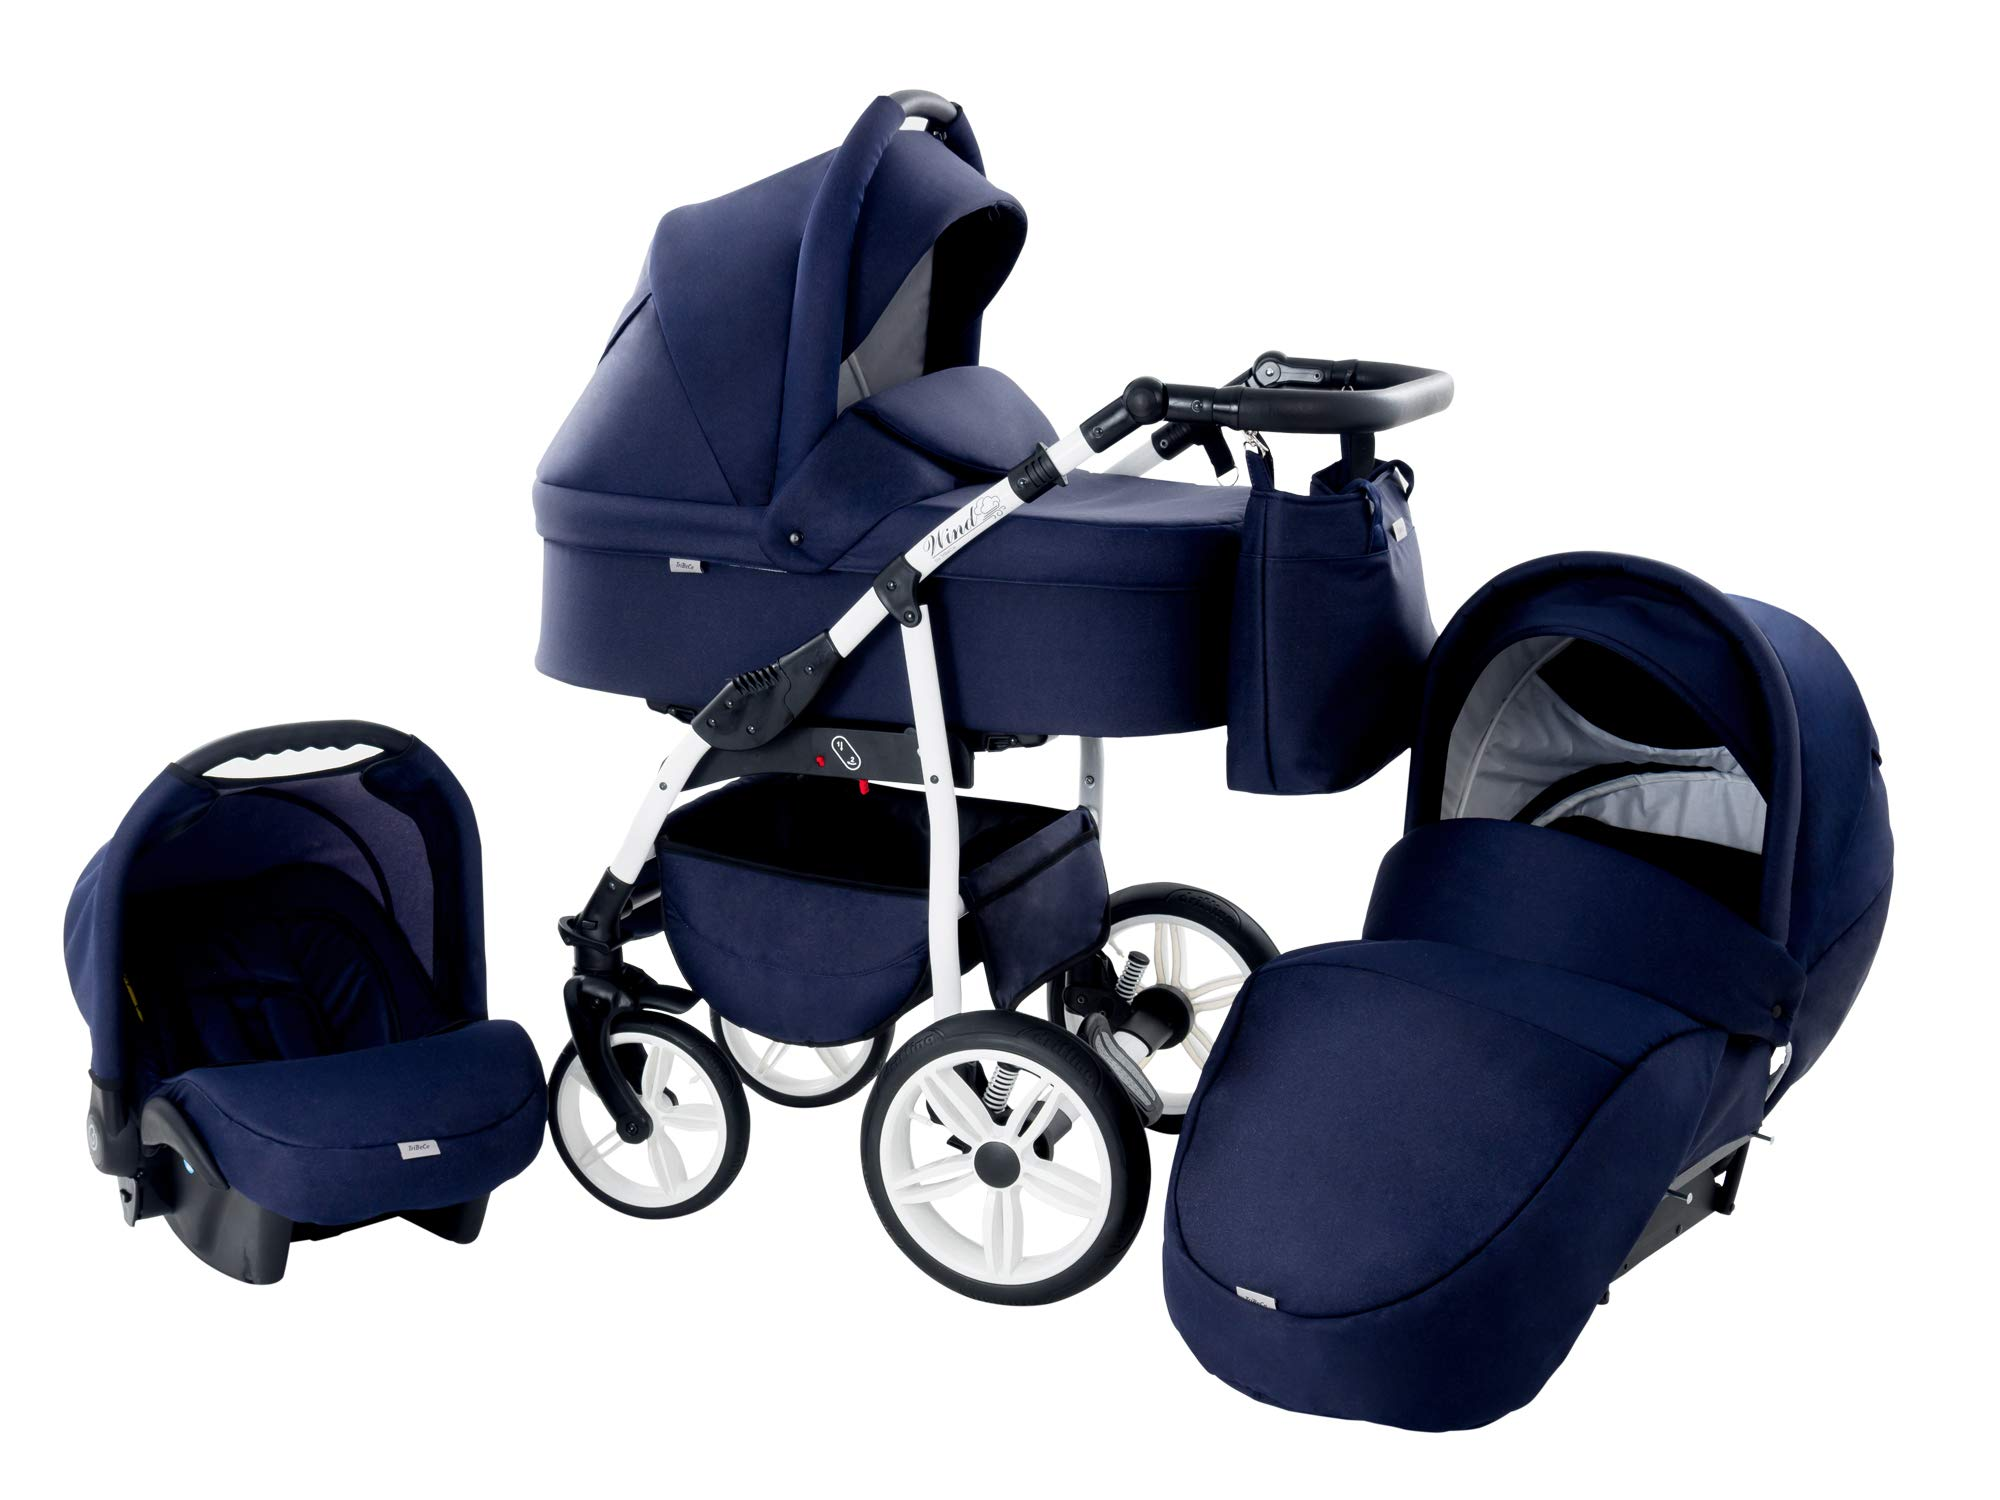 Baby Pram Zeo Wind 3in1 Set - All You Need! carrycot Gondola Buggy Sport Part Pushchair car seat (54) Zeo 3 in 1 combination stroller complete set, with reversible seat units to the buggy, child car seat or baby carriage The baby carriage is suitable for babies from 0 months to 3 years (0-15 kg) Has 360 ° swiveling wheels, four-fold suspension, four-stage backrest, five-position adjustable footrest and a five-point safety belt 1